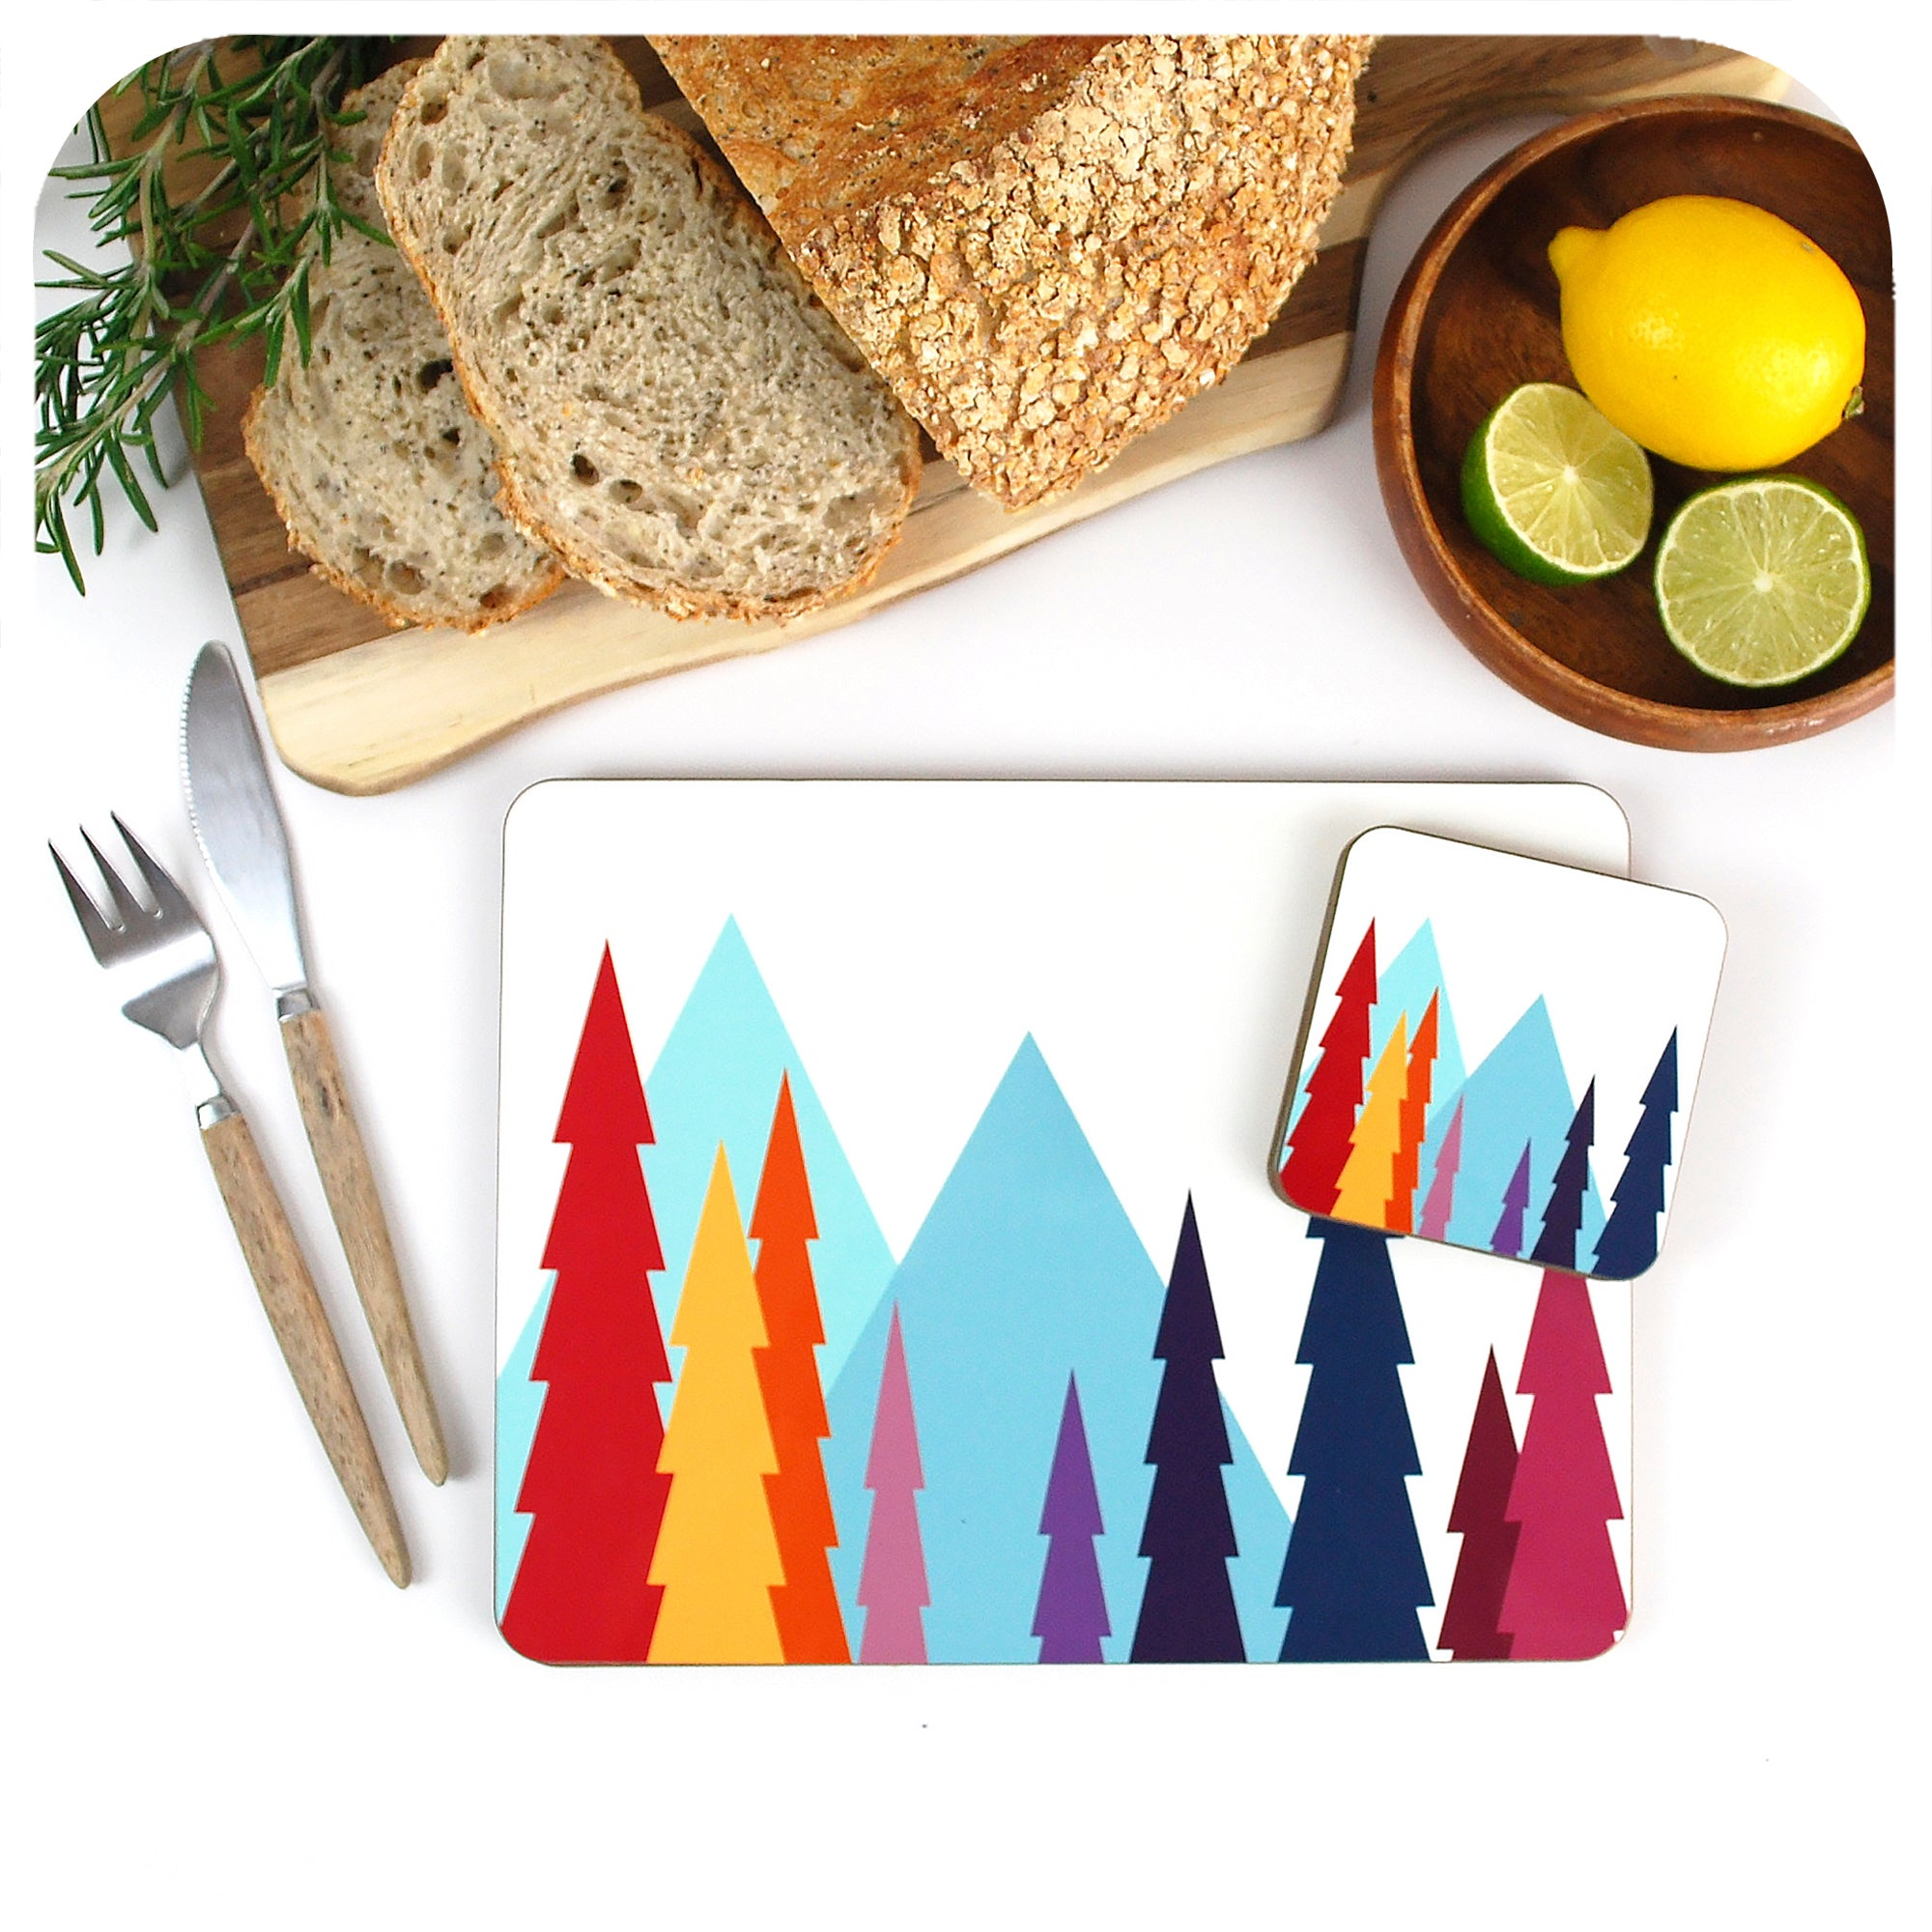 Nordic Trees Placemat and Coaster Set, single place setting | The Inkabilly Emporium